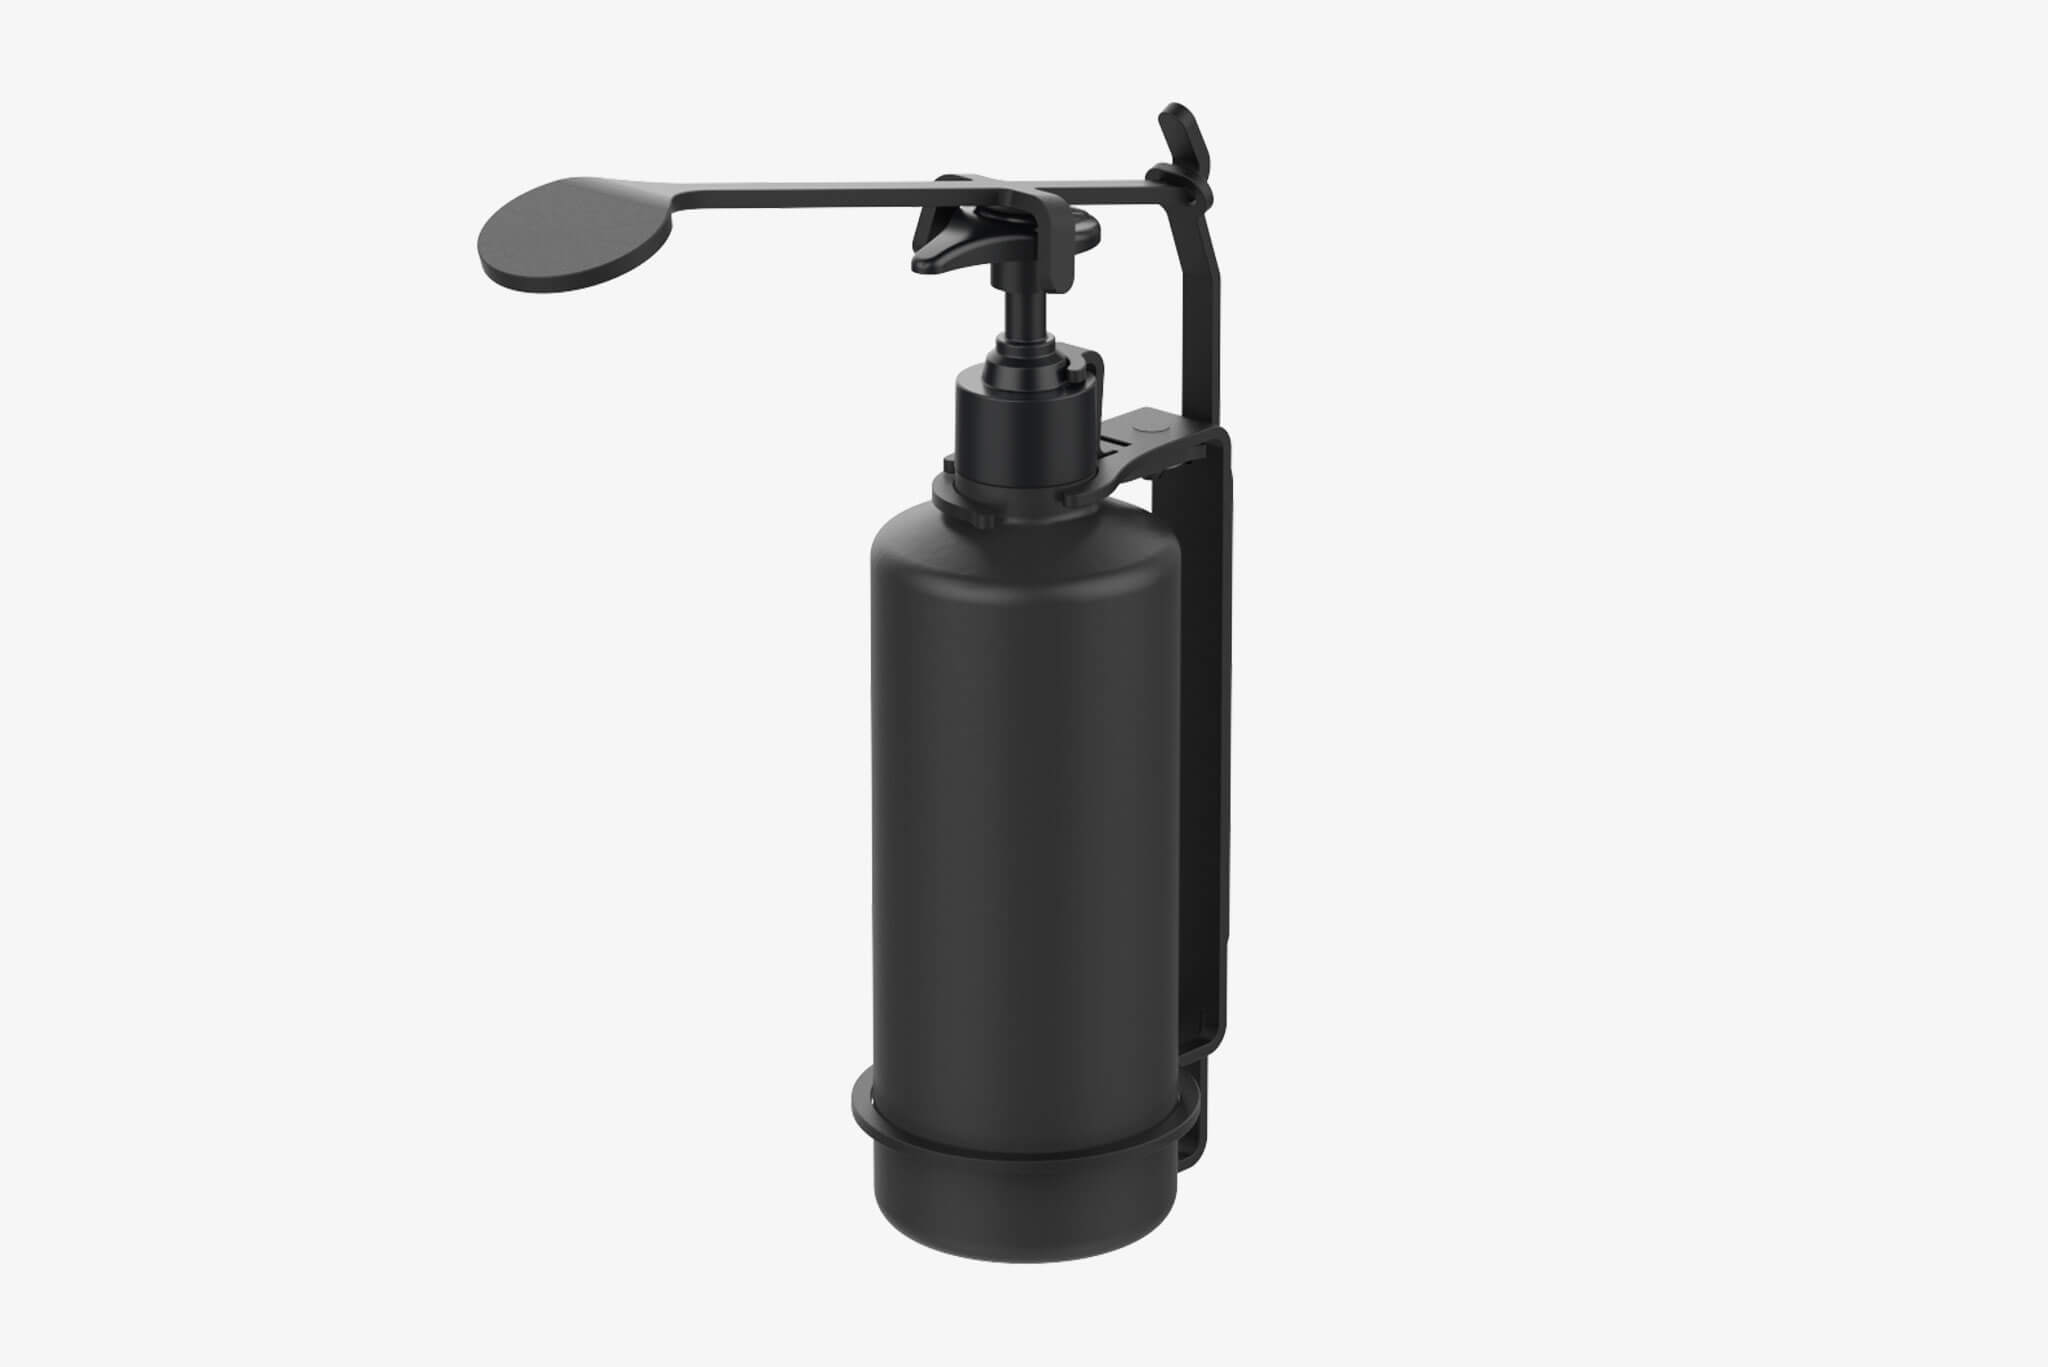 Bottle Holder Tamper Proof W/ Elbow Dispenser (ID.1800)